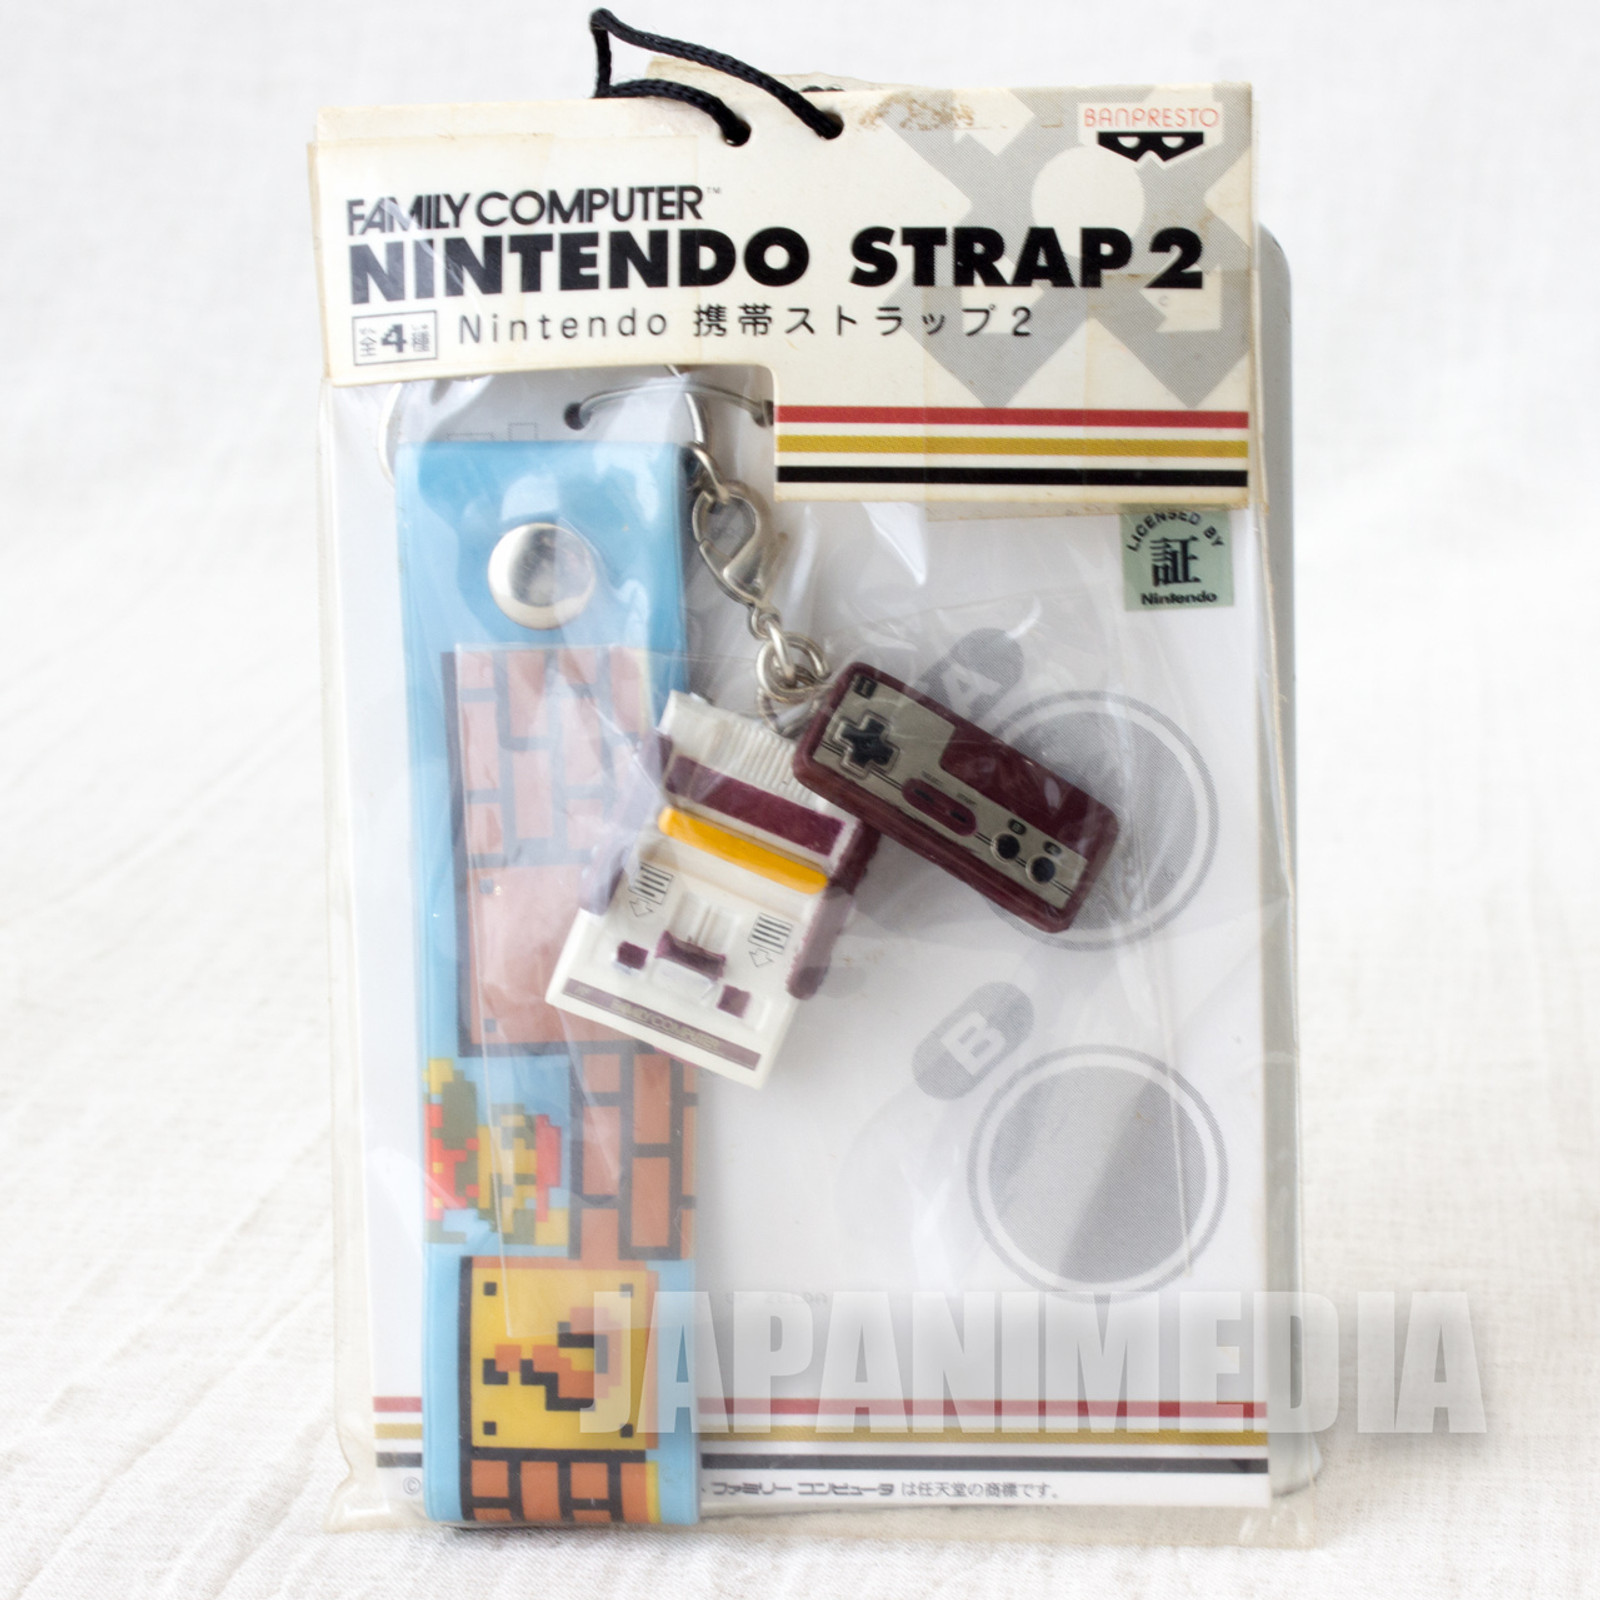 Nintendo Famicom Miniature Figure Strap Super Mario Bros. Ver. JAPAN GAME NES 3